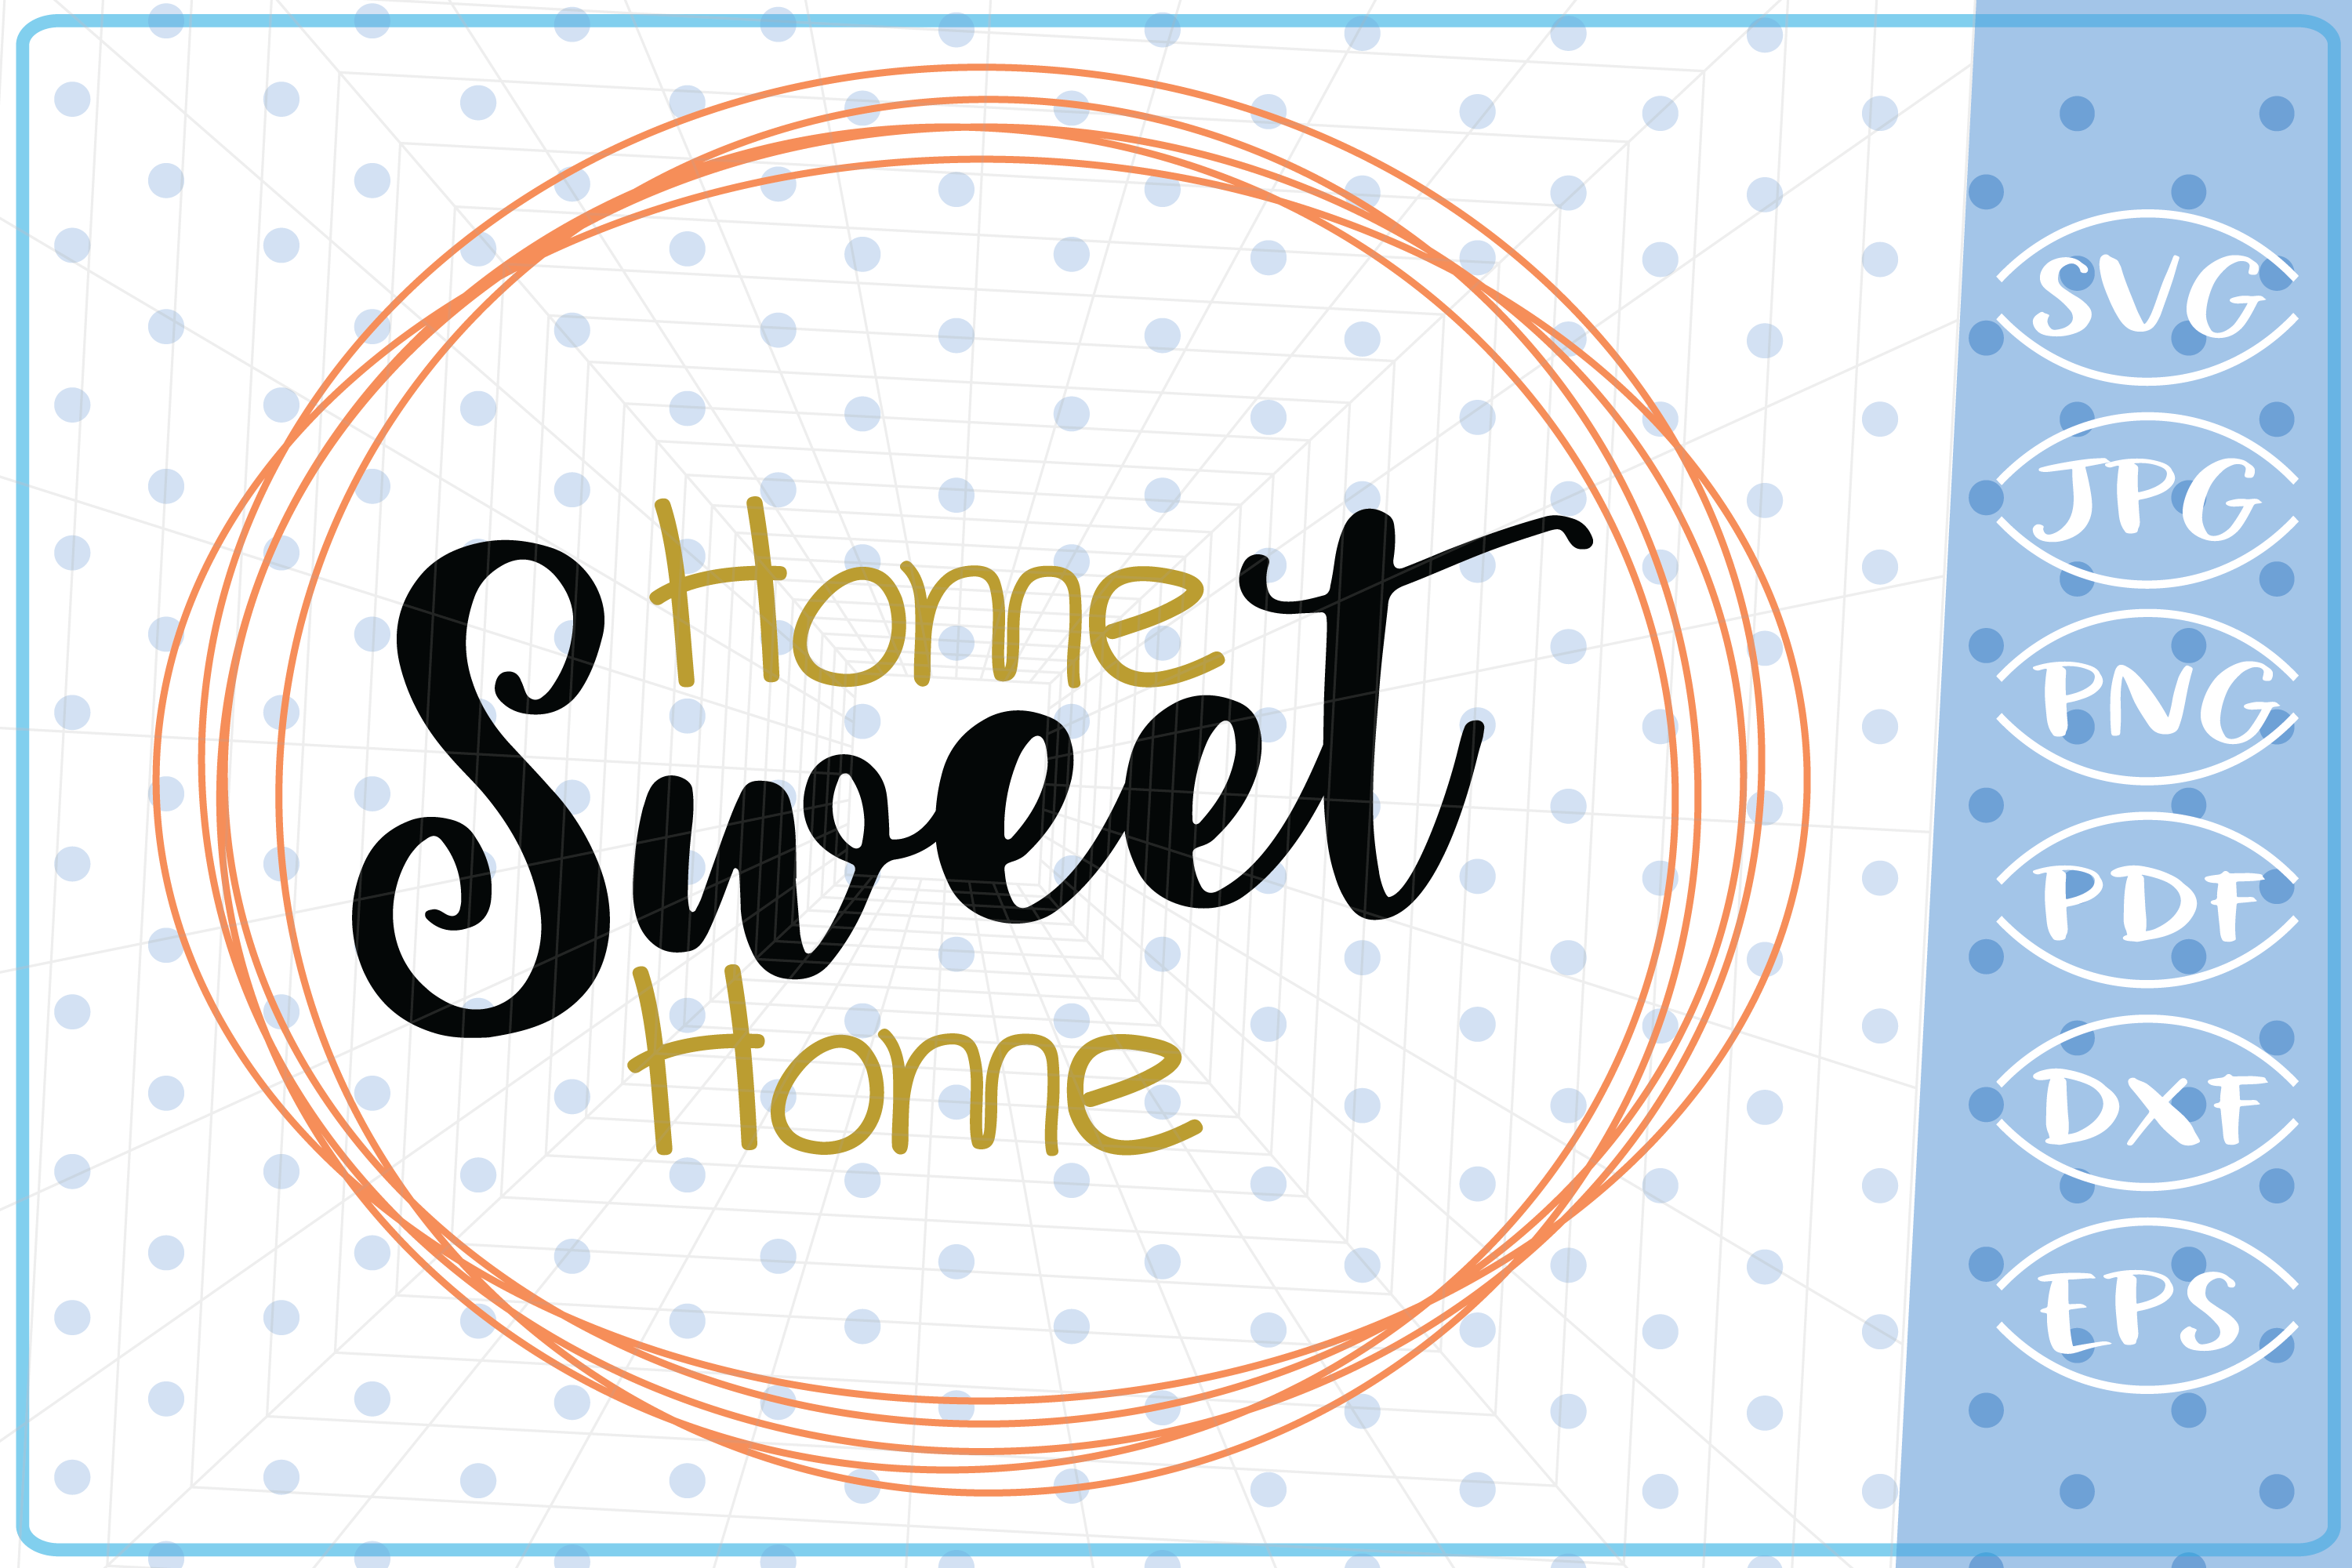 Home Sweet Home SVG, Cutting Files Svg, Cricut SVG Files SVG example image 1